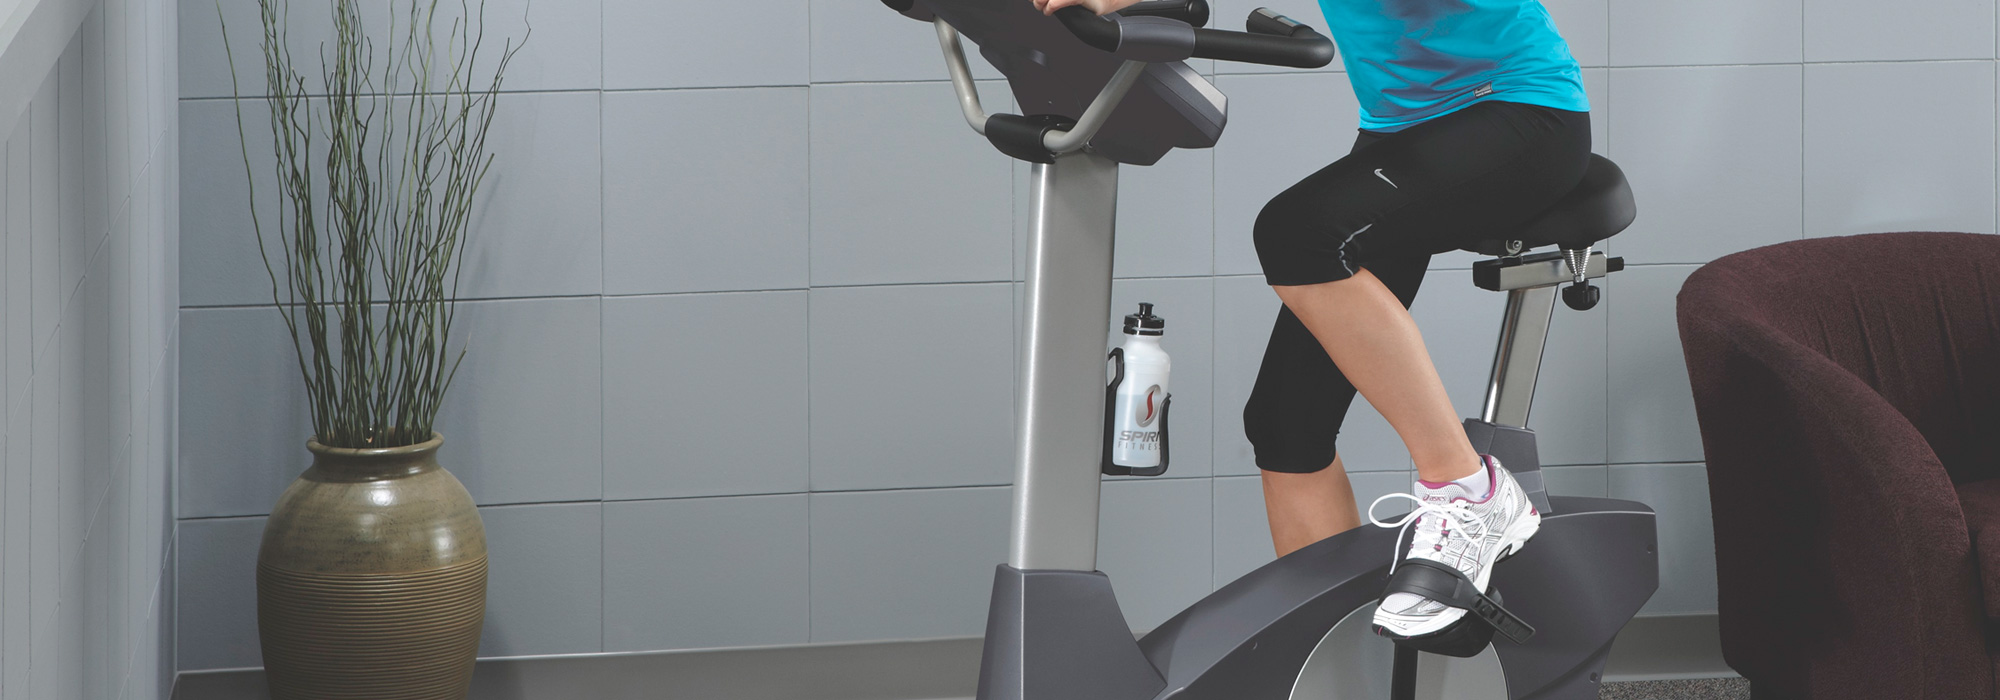 Spirit Fitness Upright Bikes